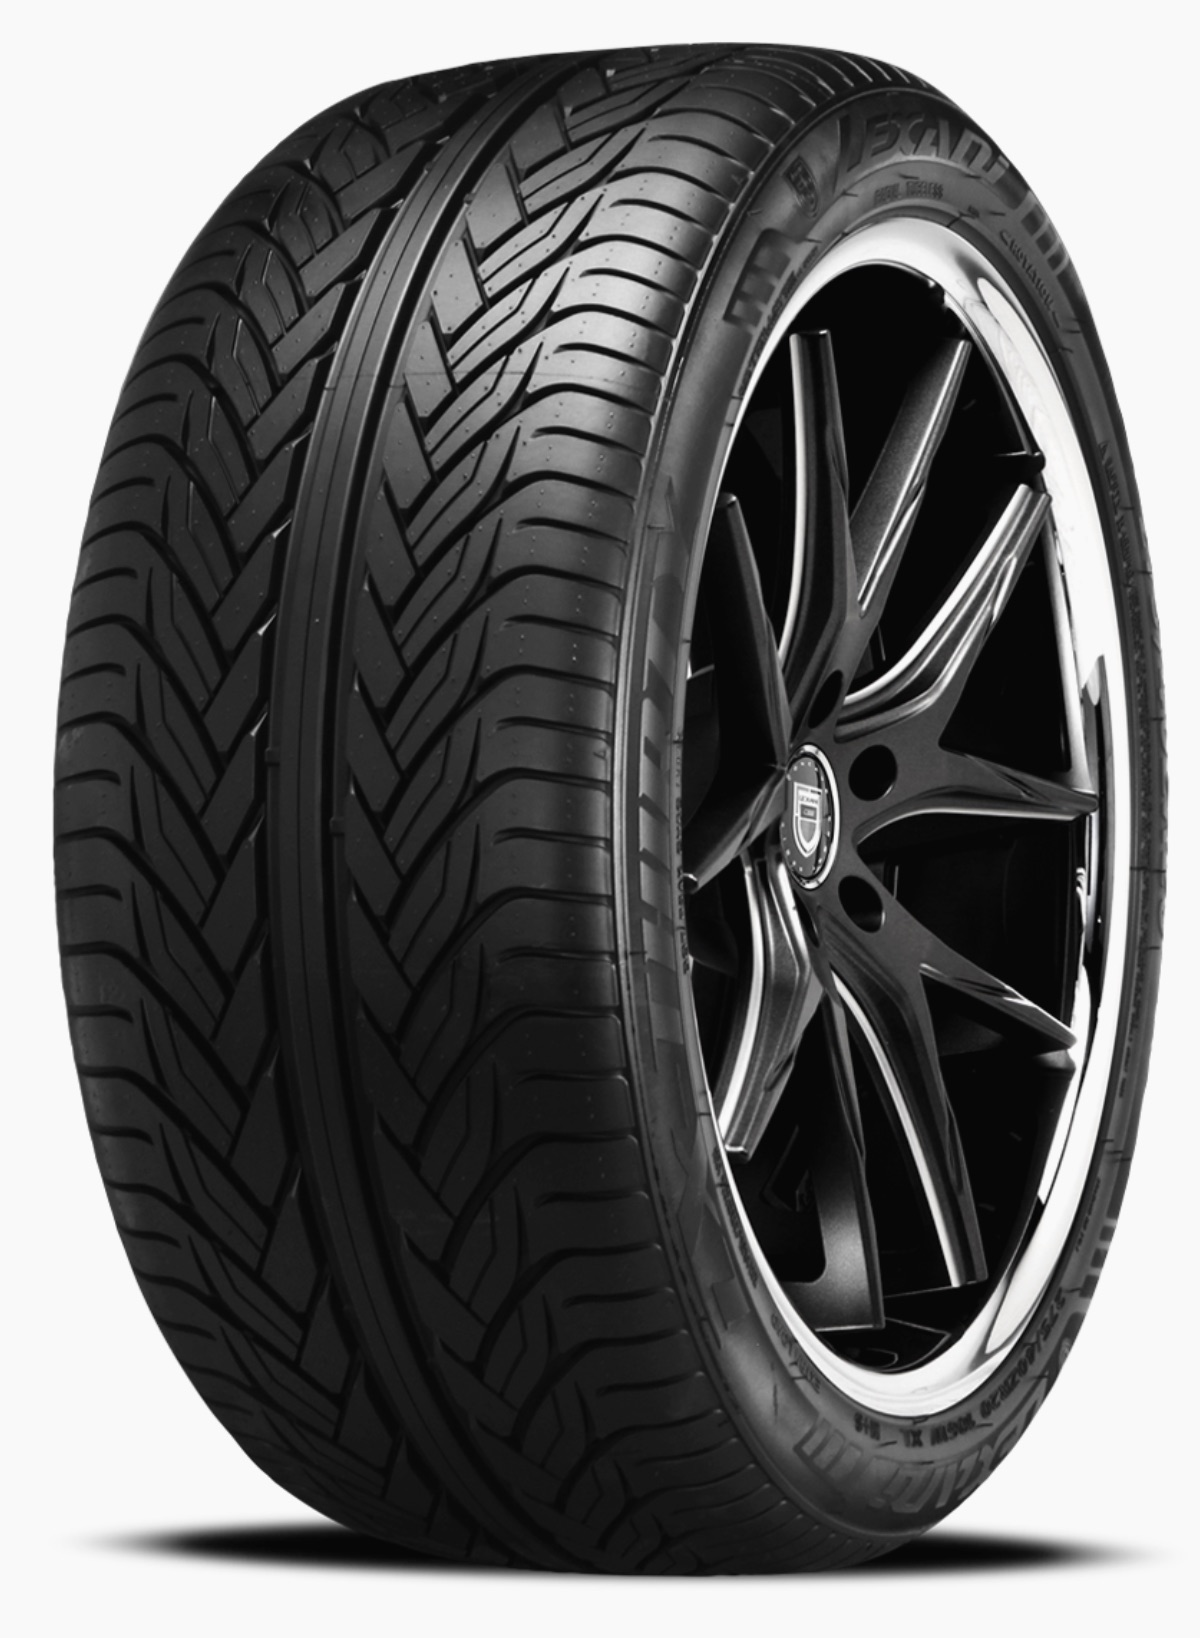 LX THIRTY (305/40 R22 – Directional)